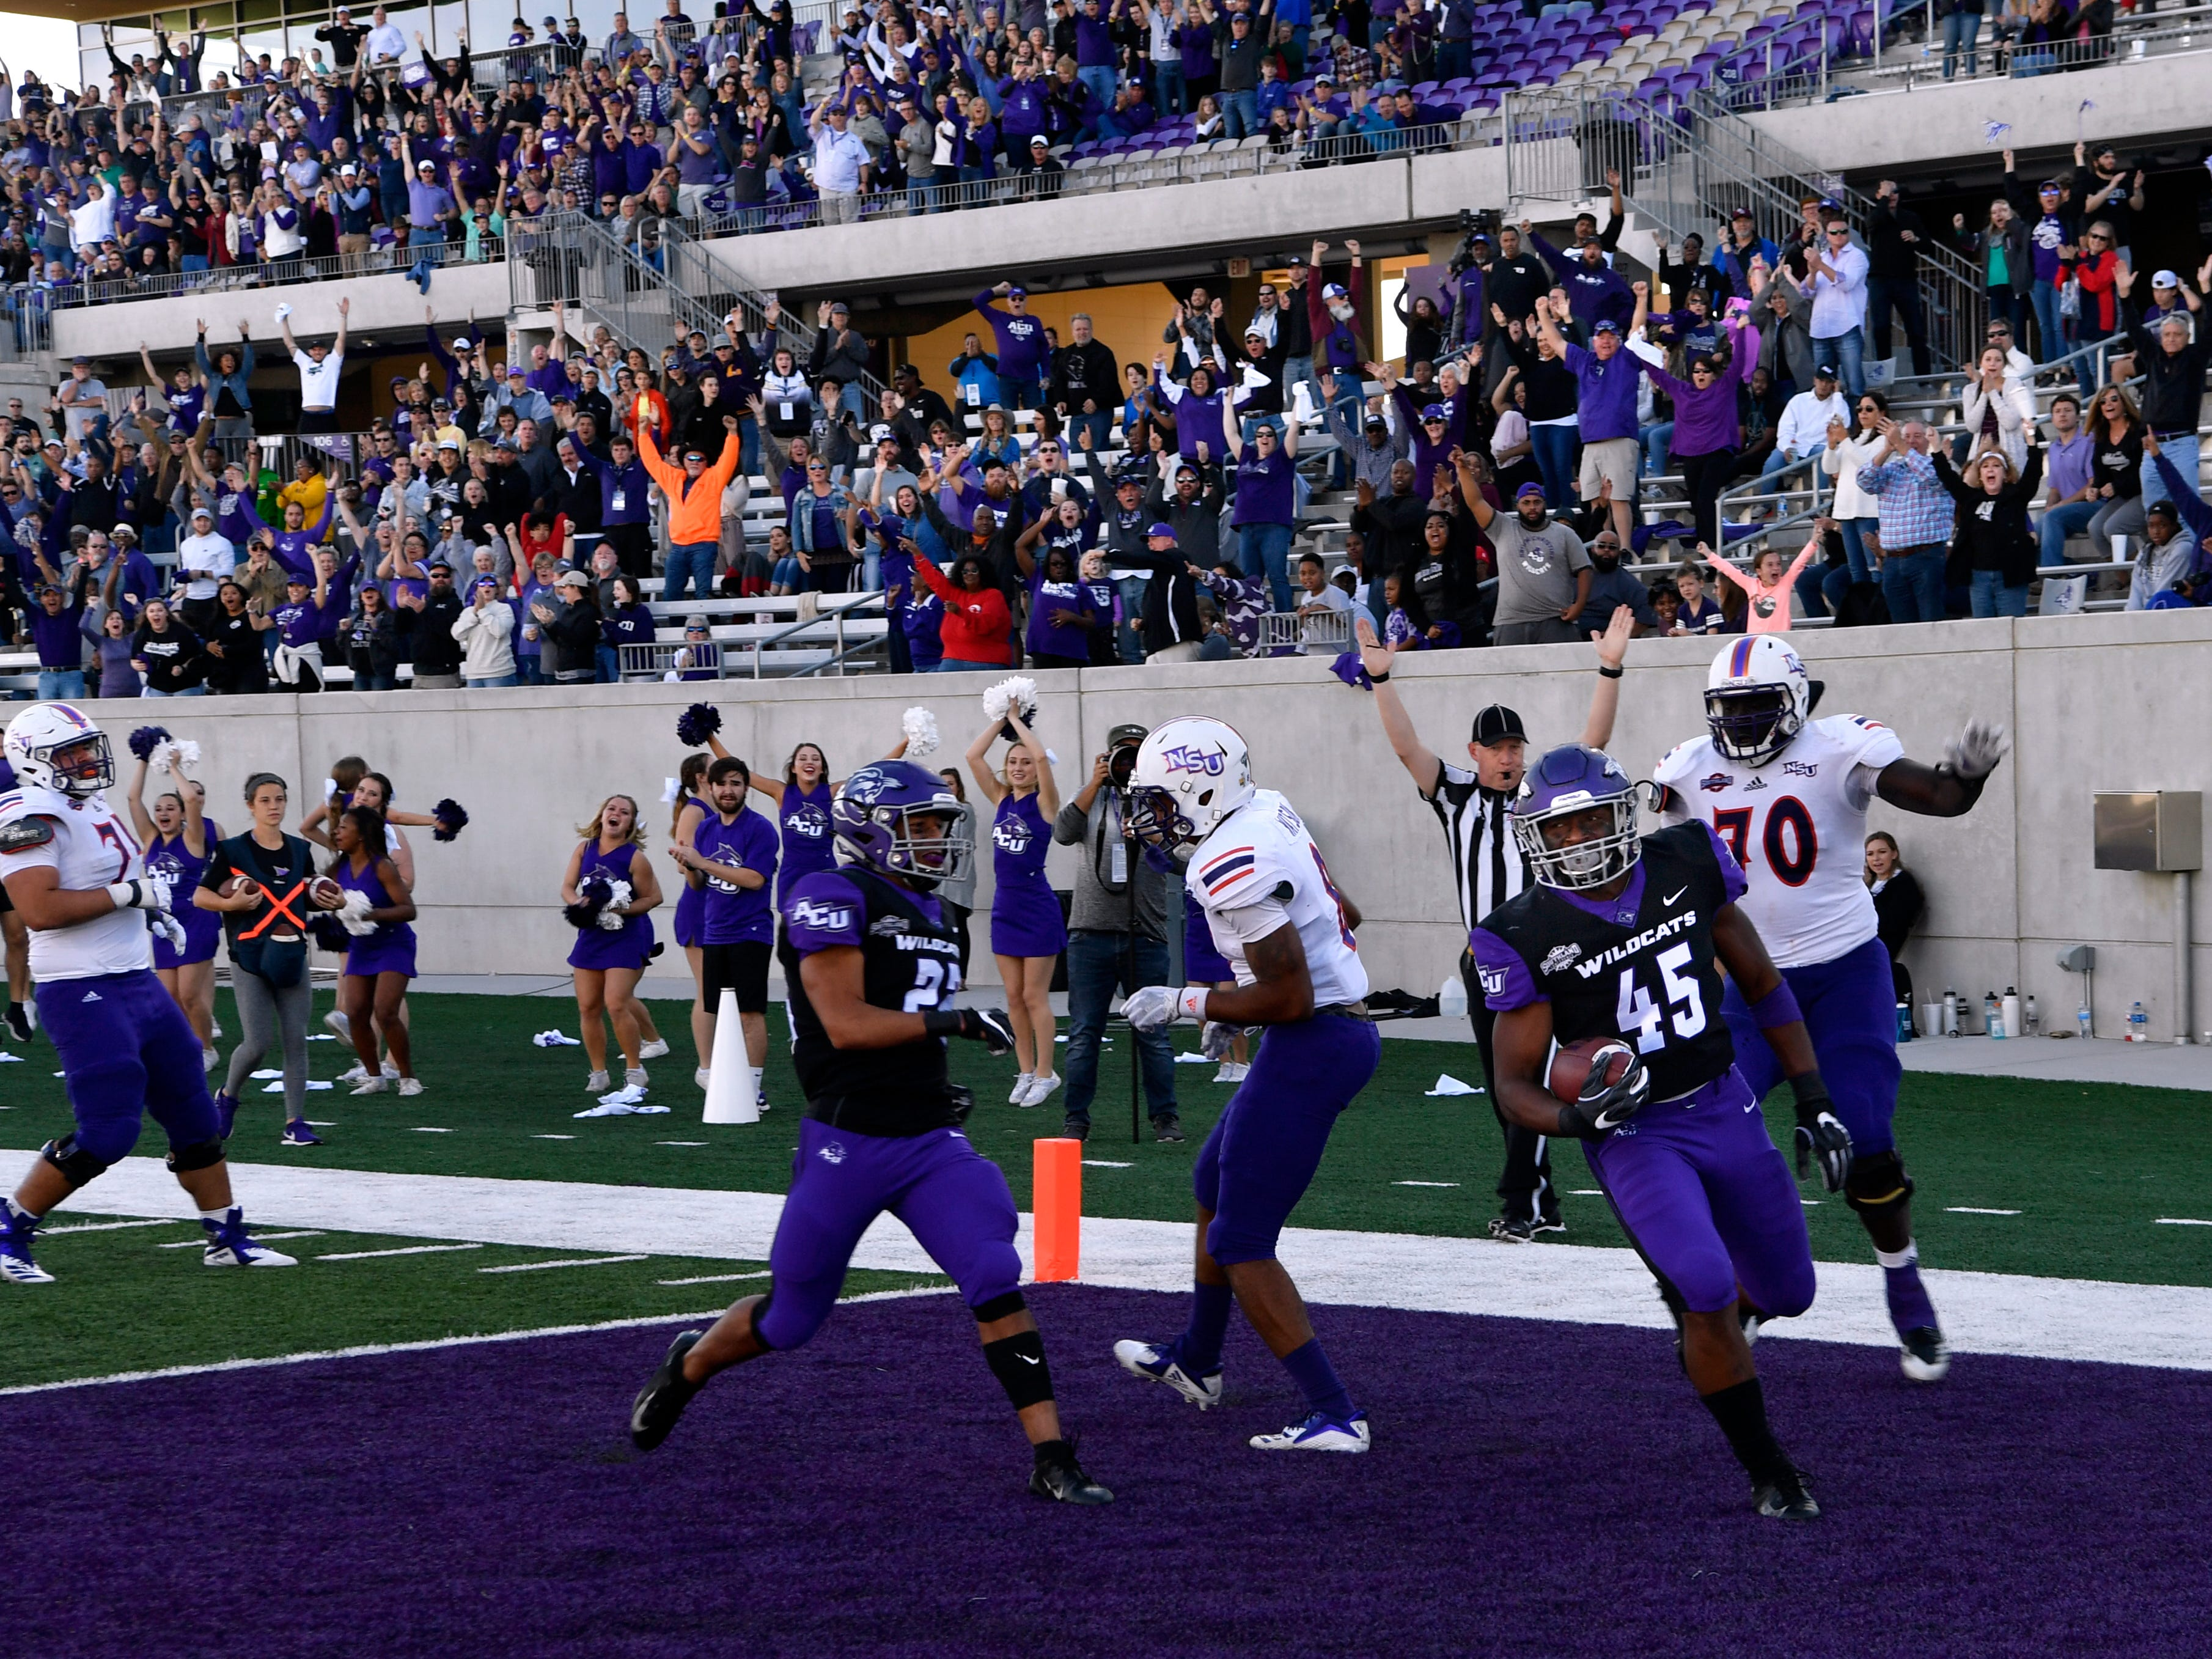 Qua'Shawn Washington scores a touchdown for the Wildcats during Saturday's game against Northwestern State University Nov. 3, 2018. Final score was 49-47, Abilene Christian University.